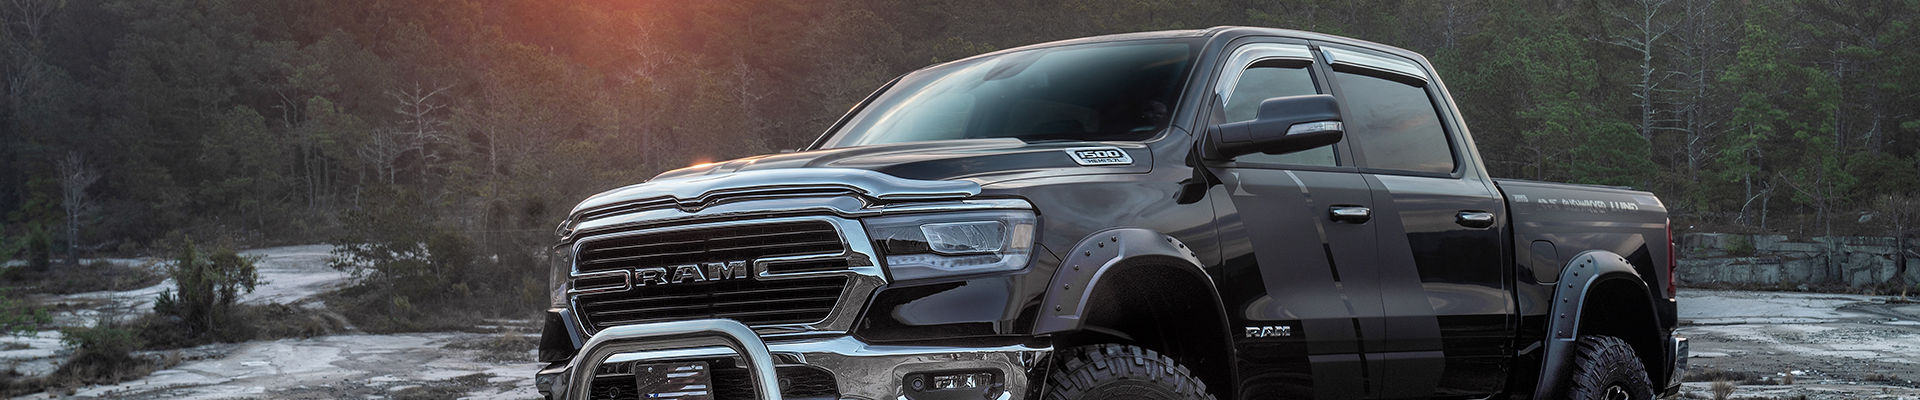 Chrome & Billet Accessories Chrome exterior accessories for trucks and SUVs include door handle, fuel door, tailgate and mirror covers. Our durable and stylish chrome accessories provide a classic custom look for your vehicle.